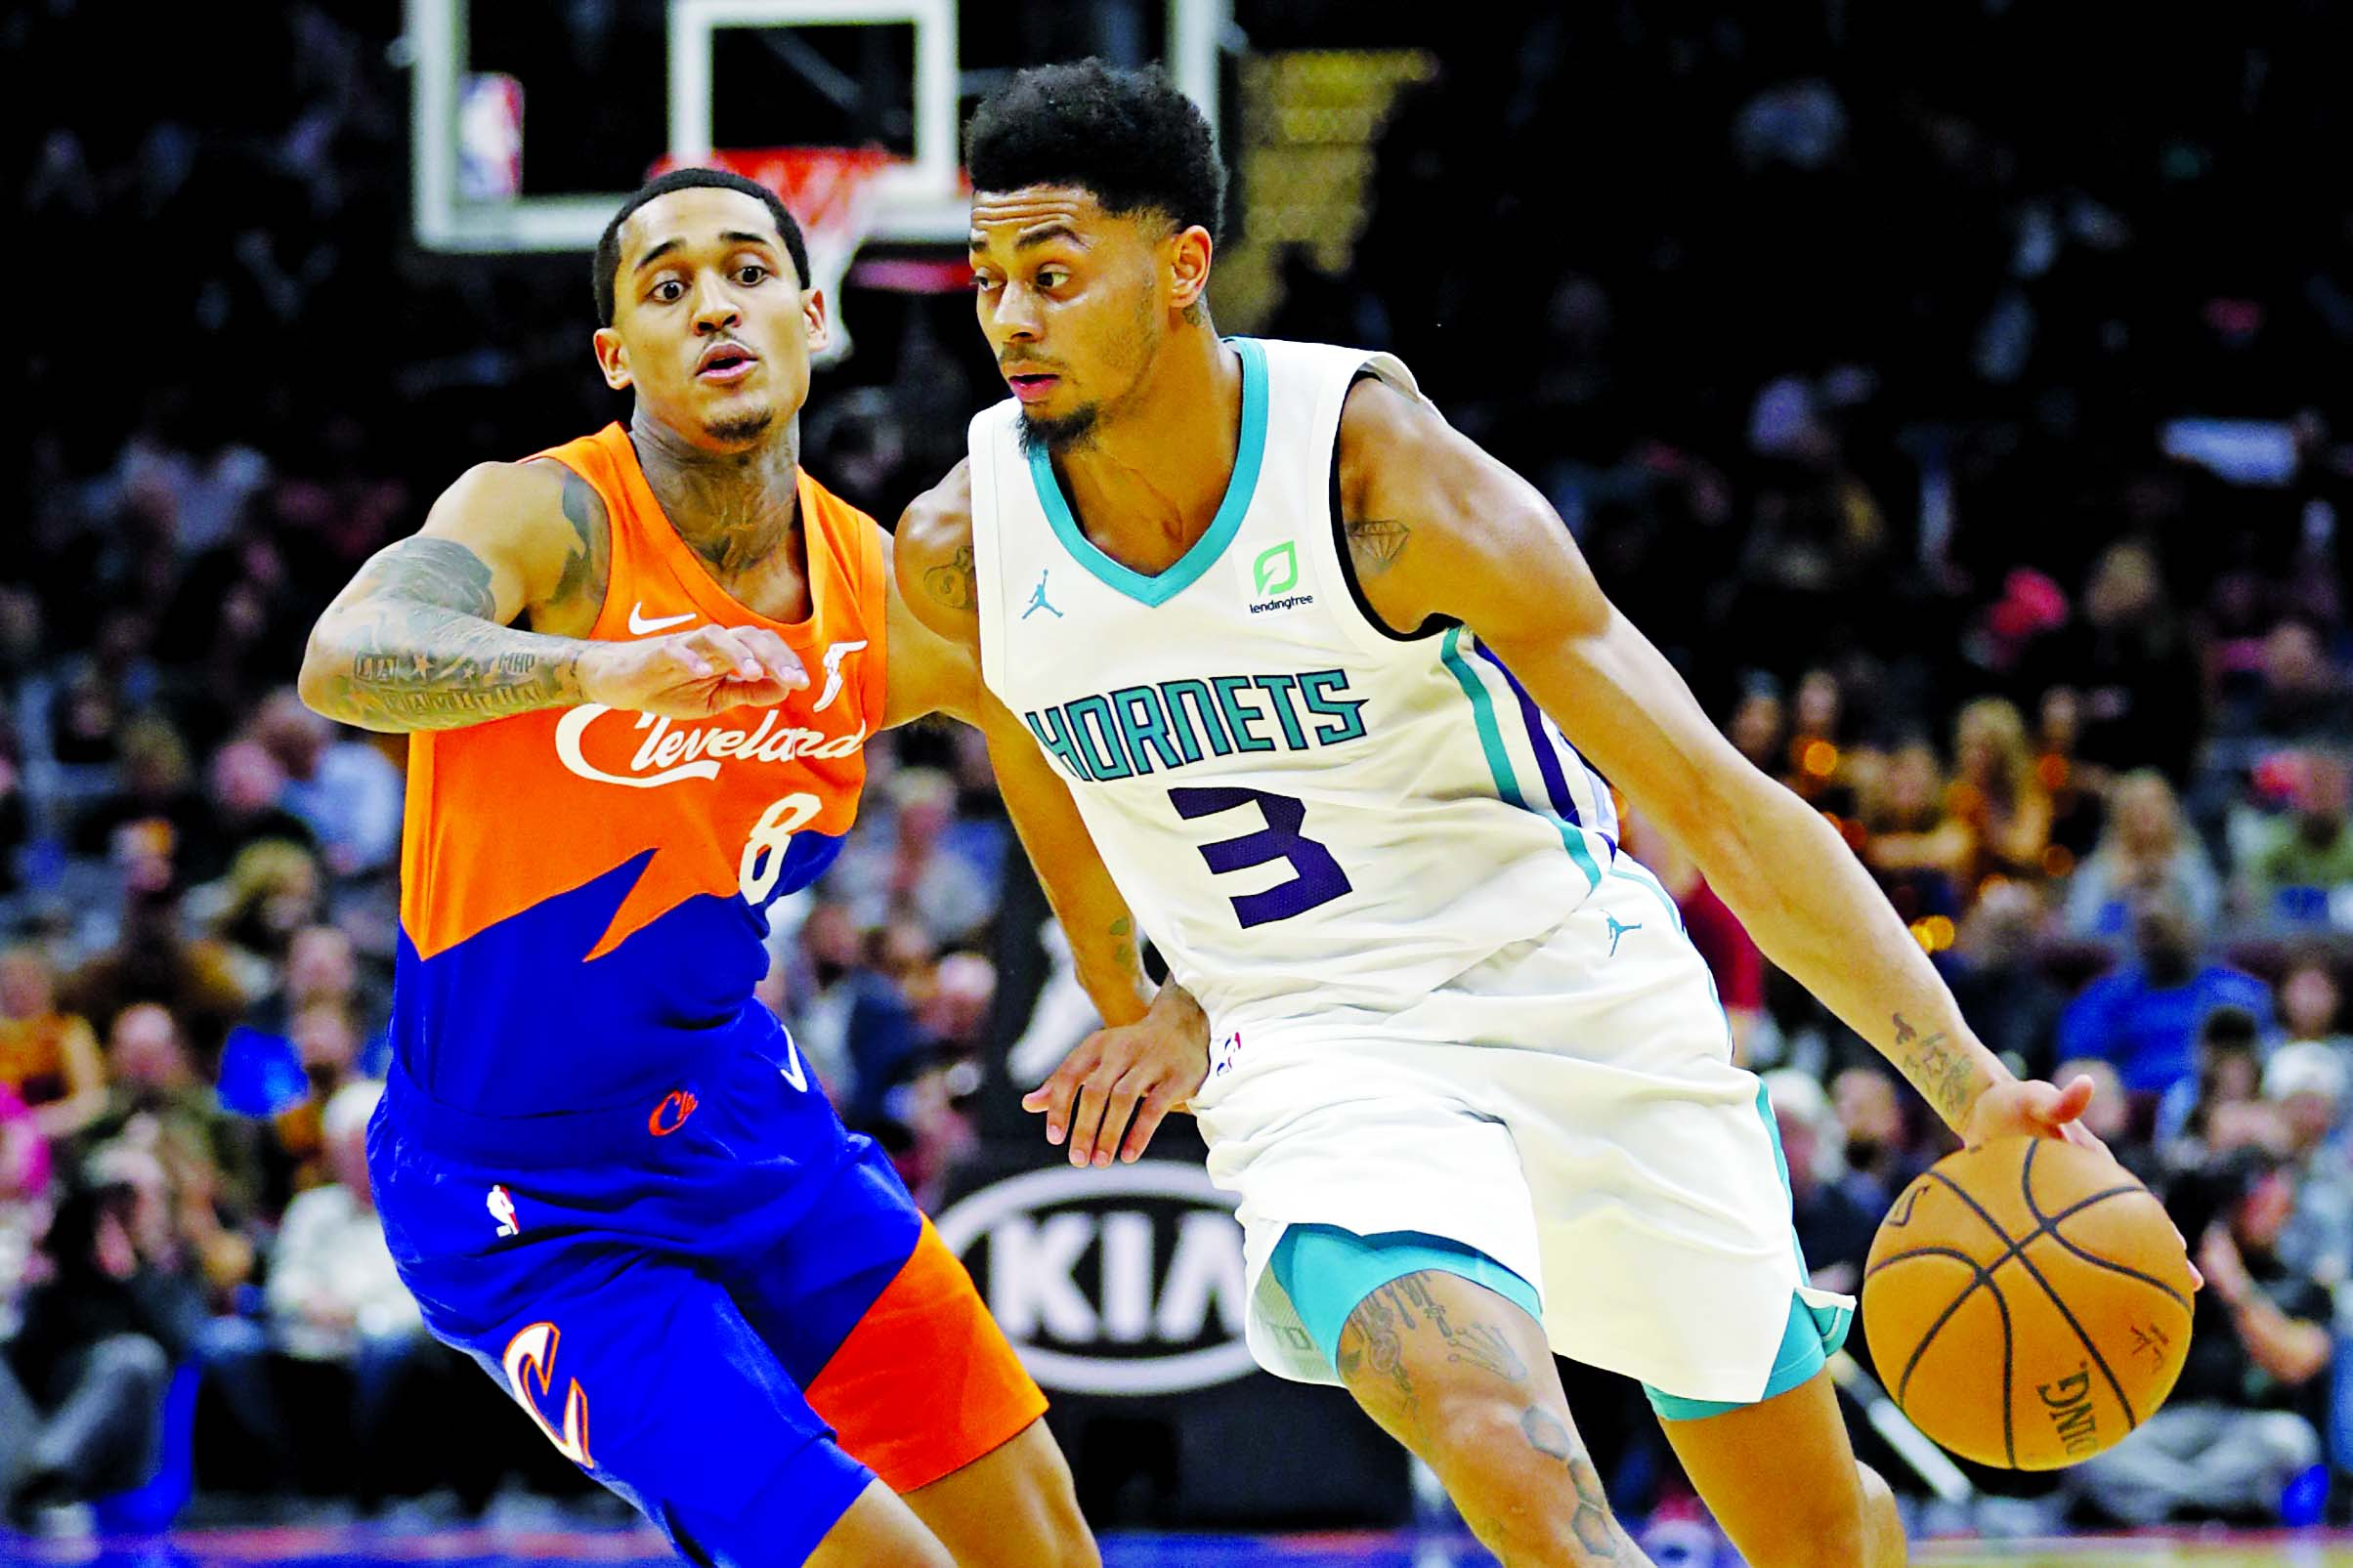 Charlotte Hornets' Jeremy Lamb (3) drives against Cleveland Cavaliers' Jordan Clarkson (8) in the second half of an NBA basketball game in Cleveland on Tuesday. The Cavaliers won 113-89.